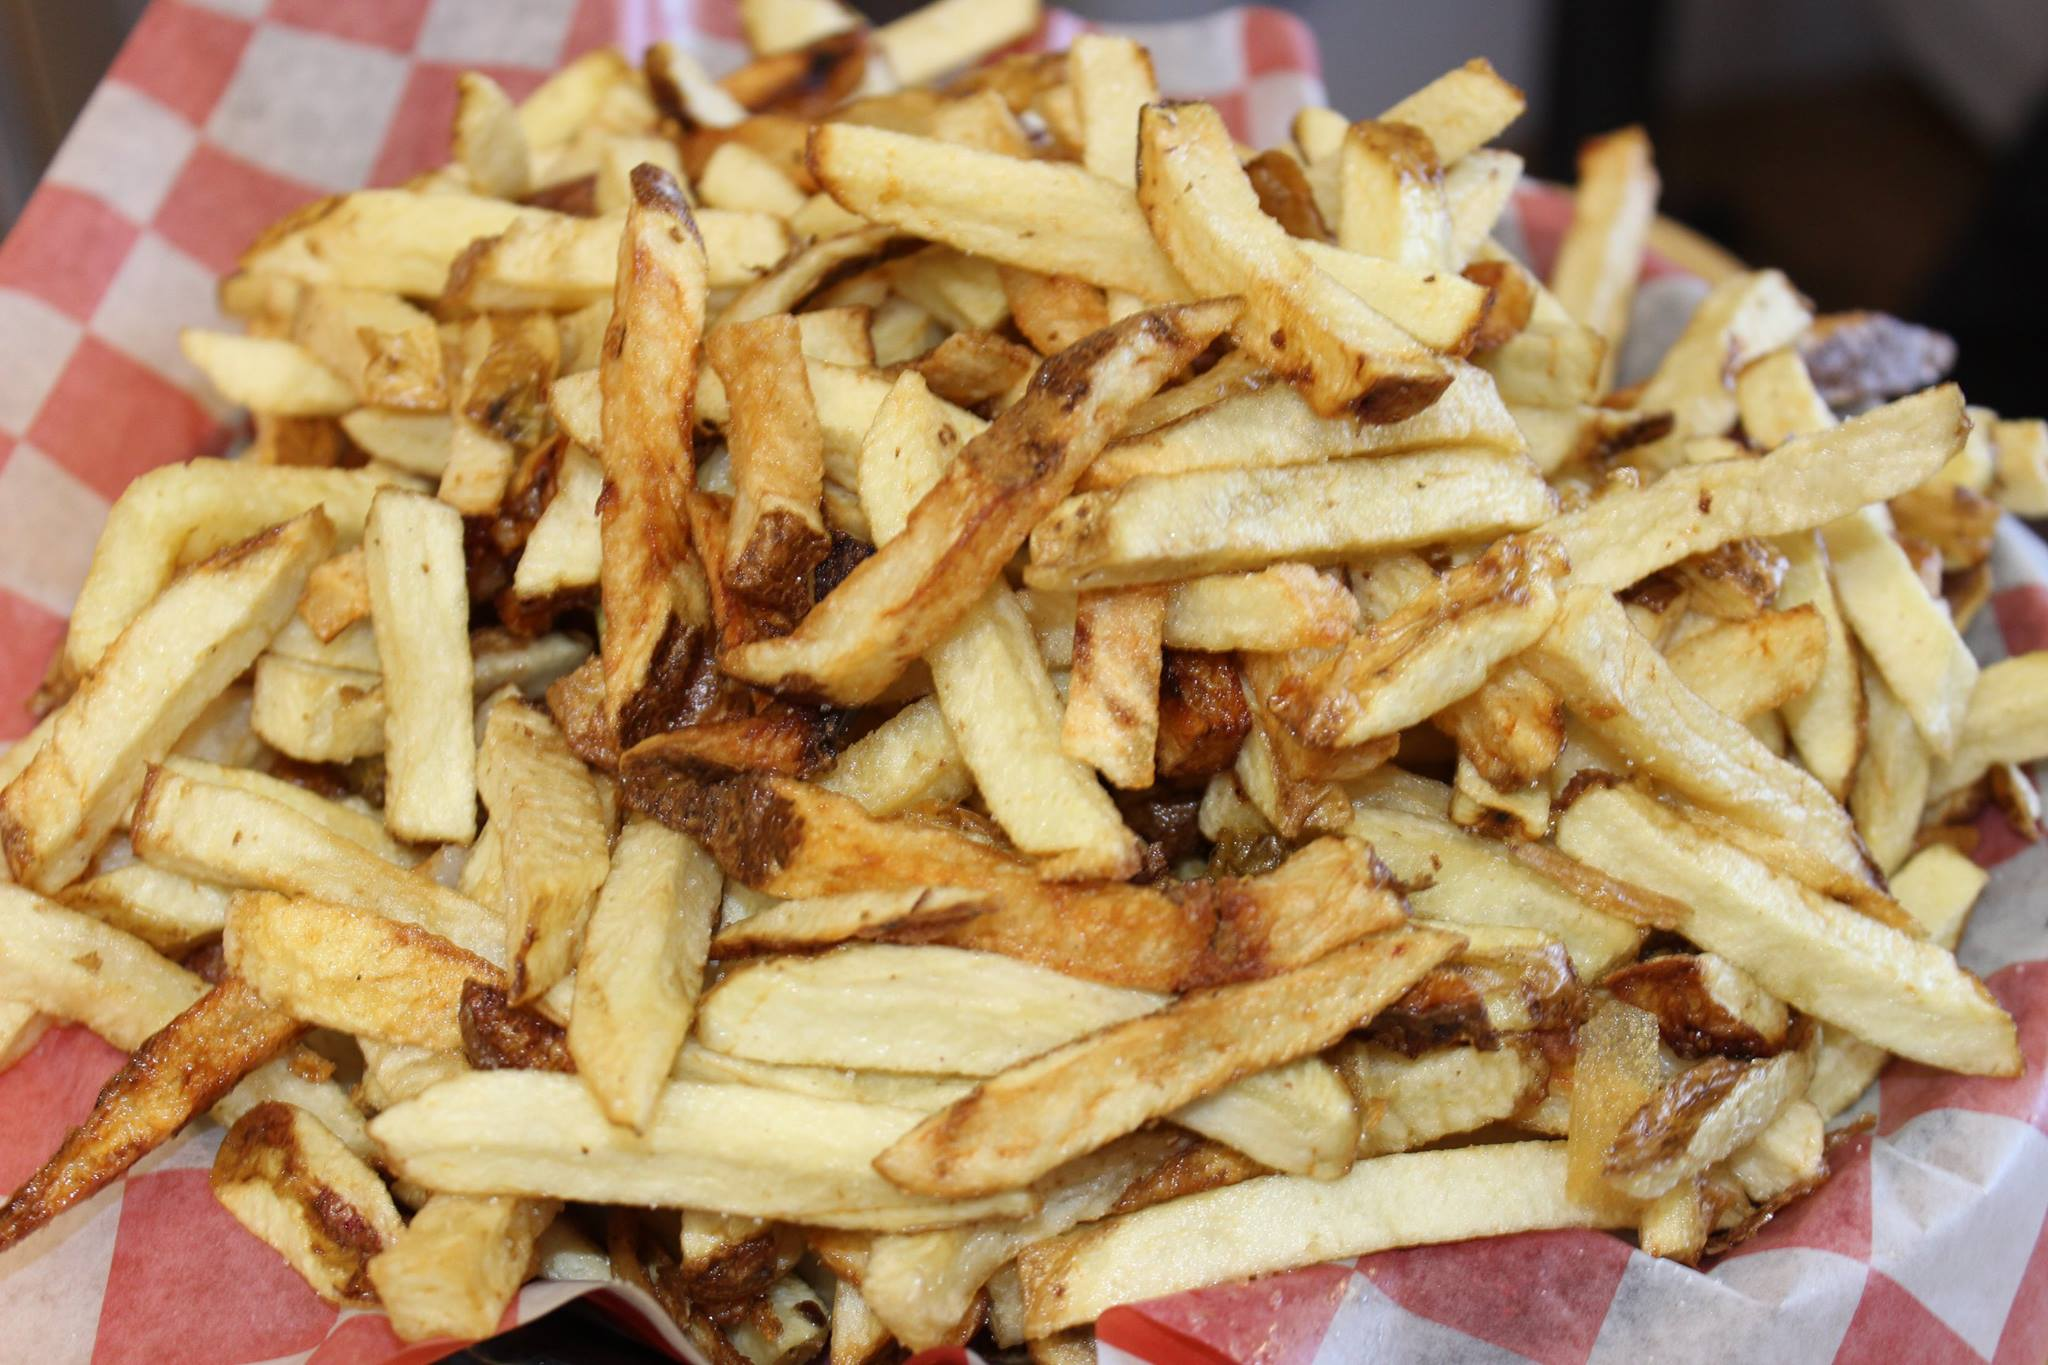 country kitchen fresh cut fries.jpg